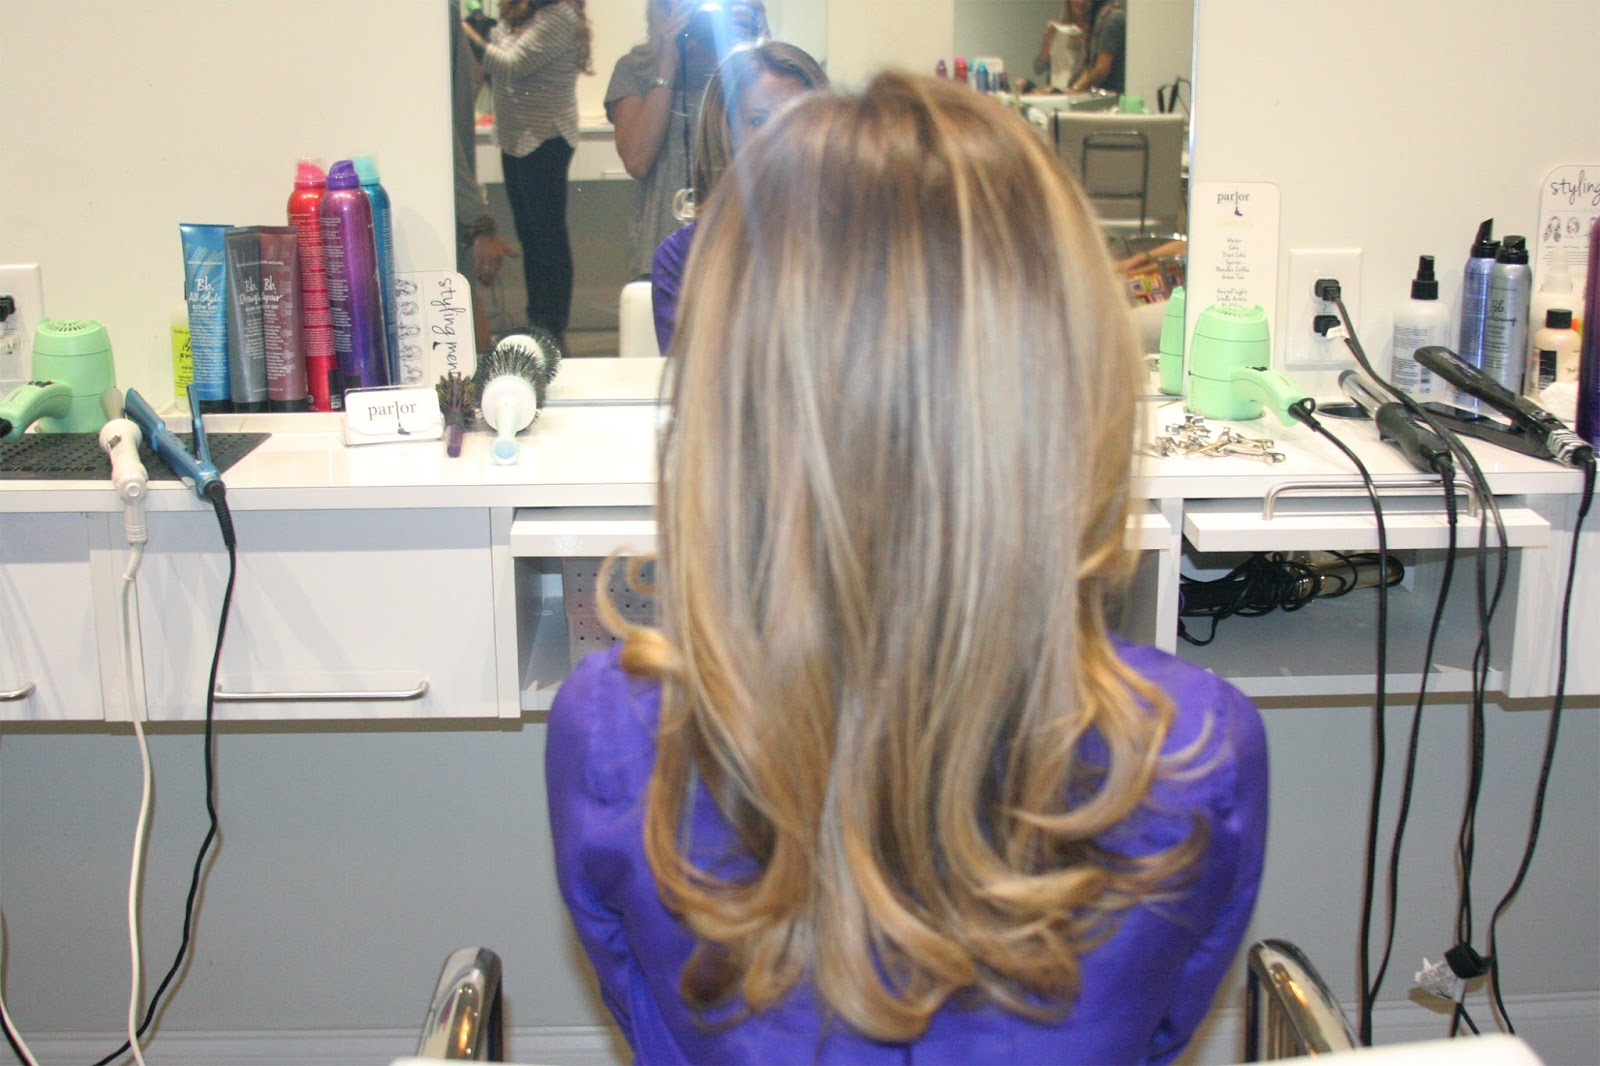 Chic-blown-out-hair-with-volume-and-curls